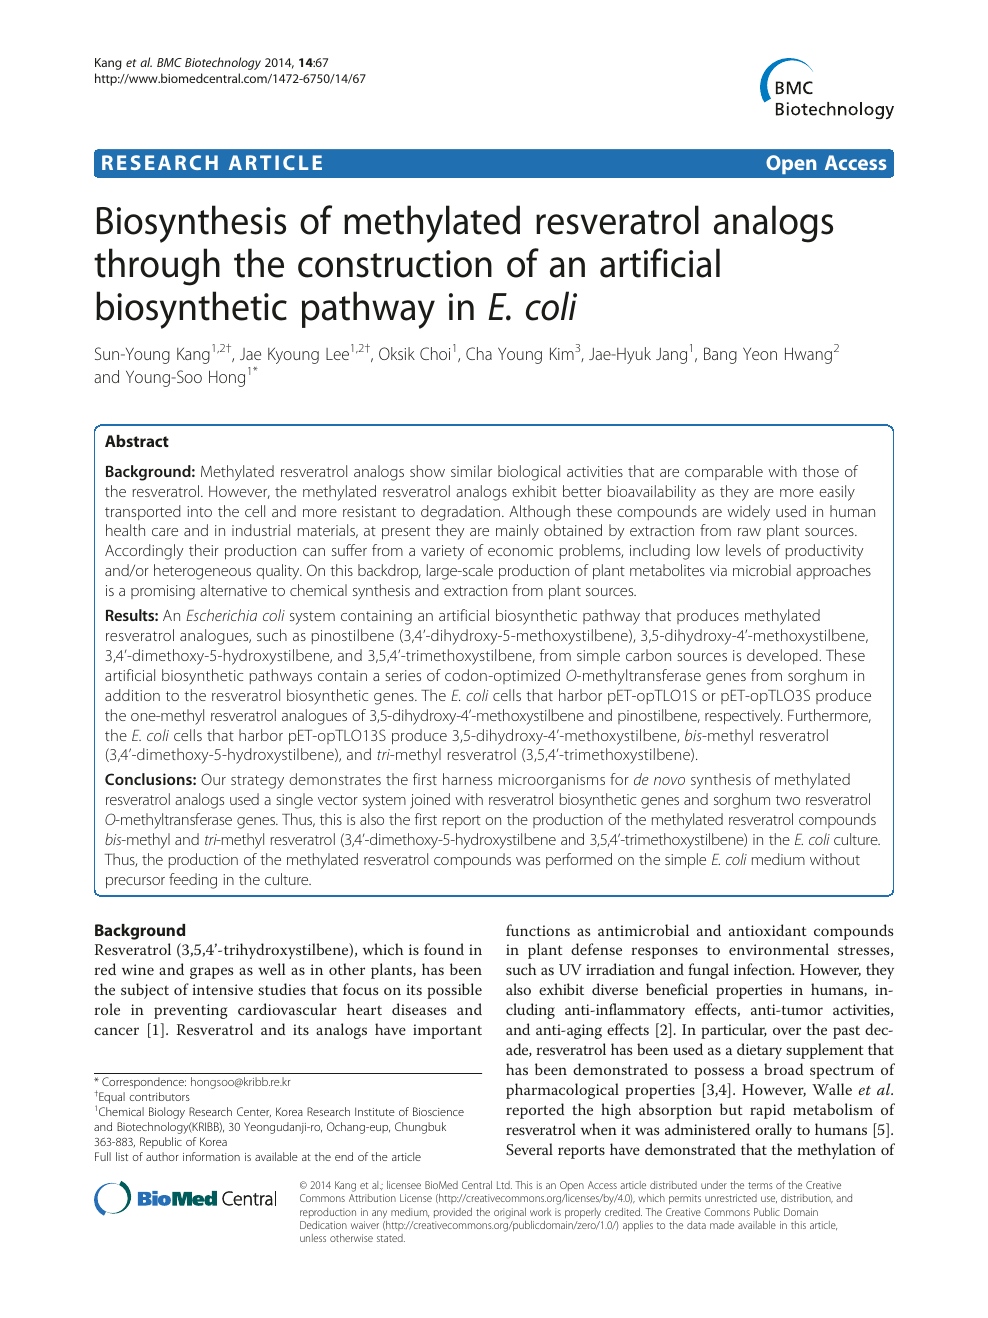 Biosynthesis Of Methylated Resveratrol Analogs Through The Construction Of An Artificial Biosynthetic Pathway In E Coli Topic Of Research Paper In Biological Sciences Download Scholarly Article Pdf And Read For Free